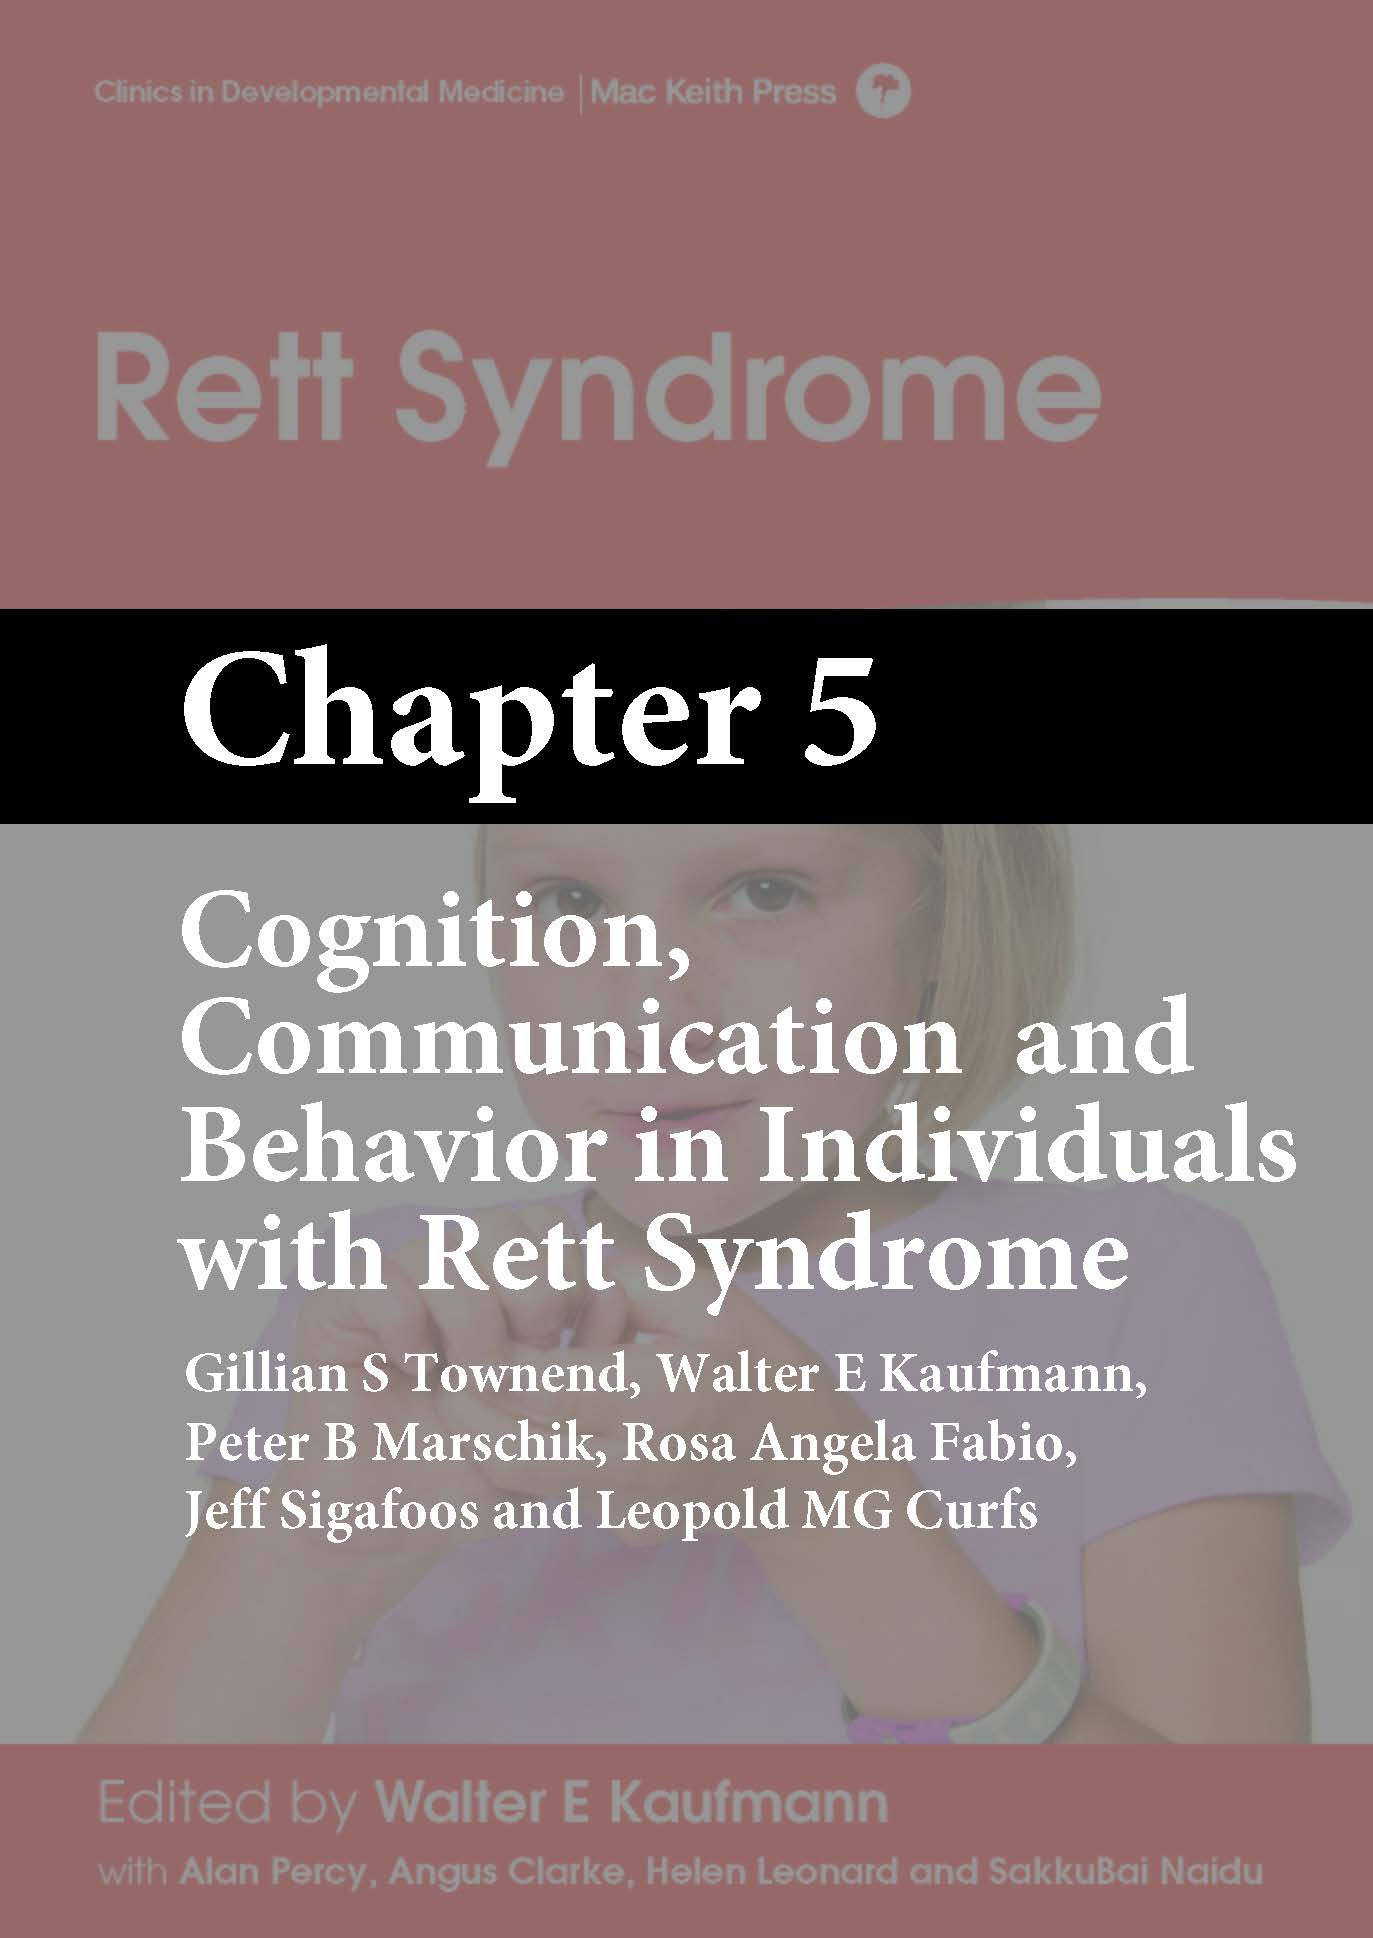 Rett Syndrome, Kaufmann, Chapter 5 cover